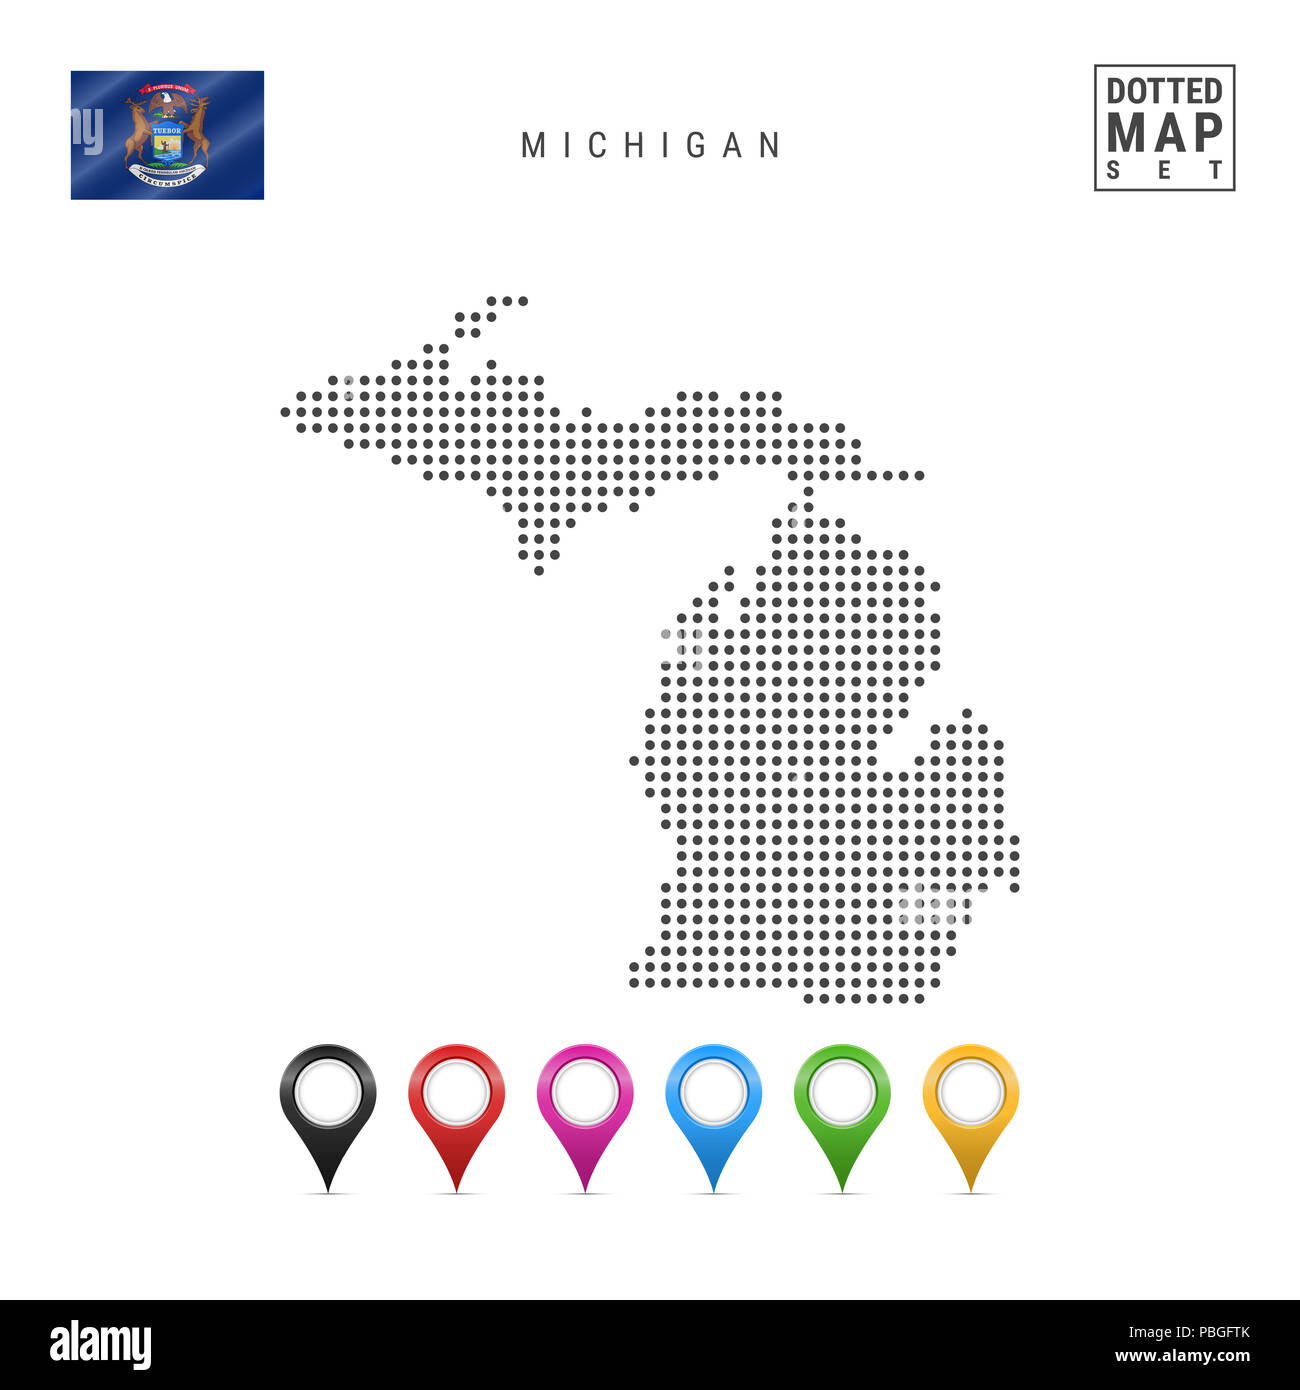 Map State Michigan American Flag Imágenes De Stock & Map State ...